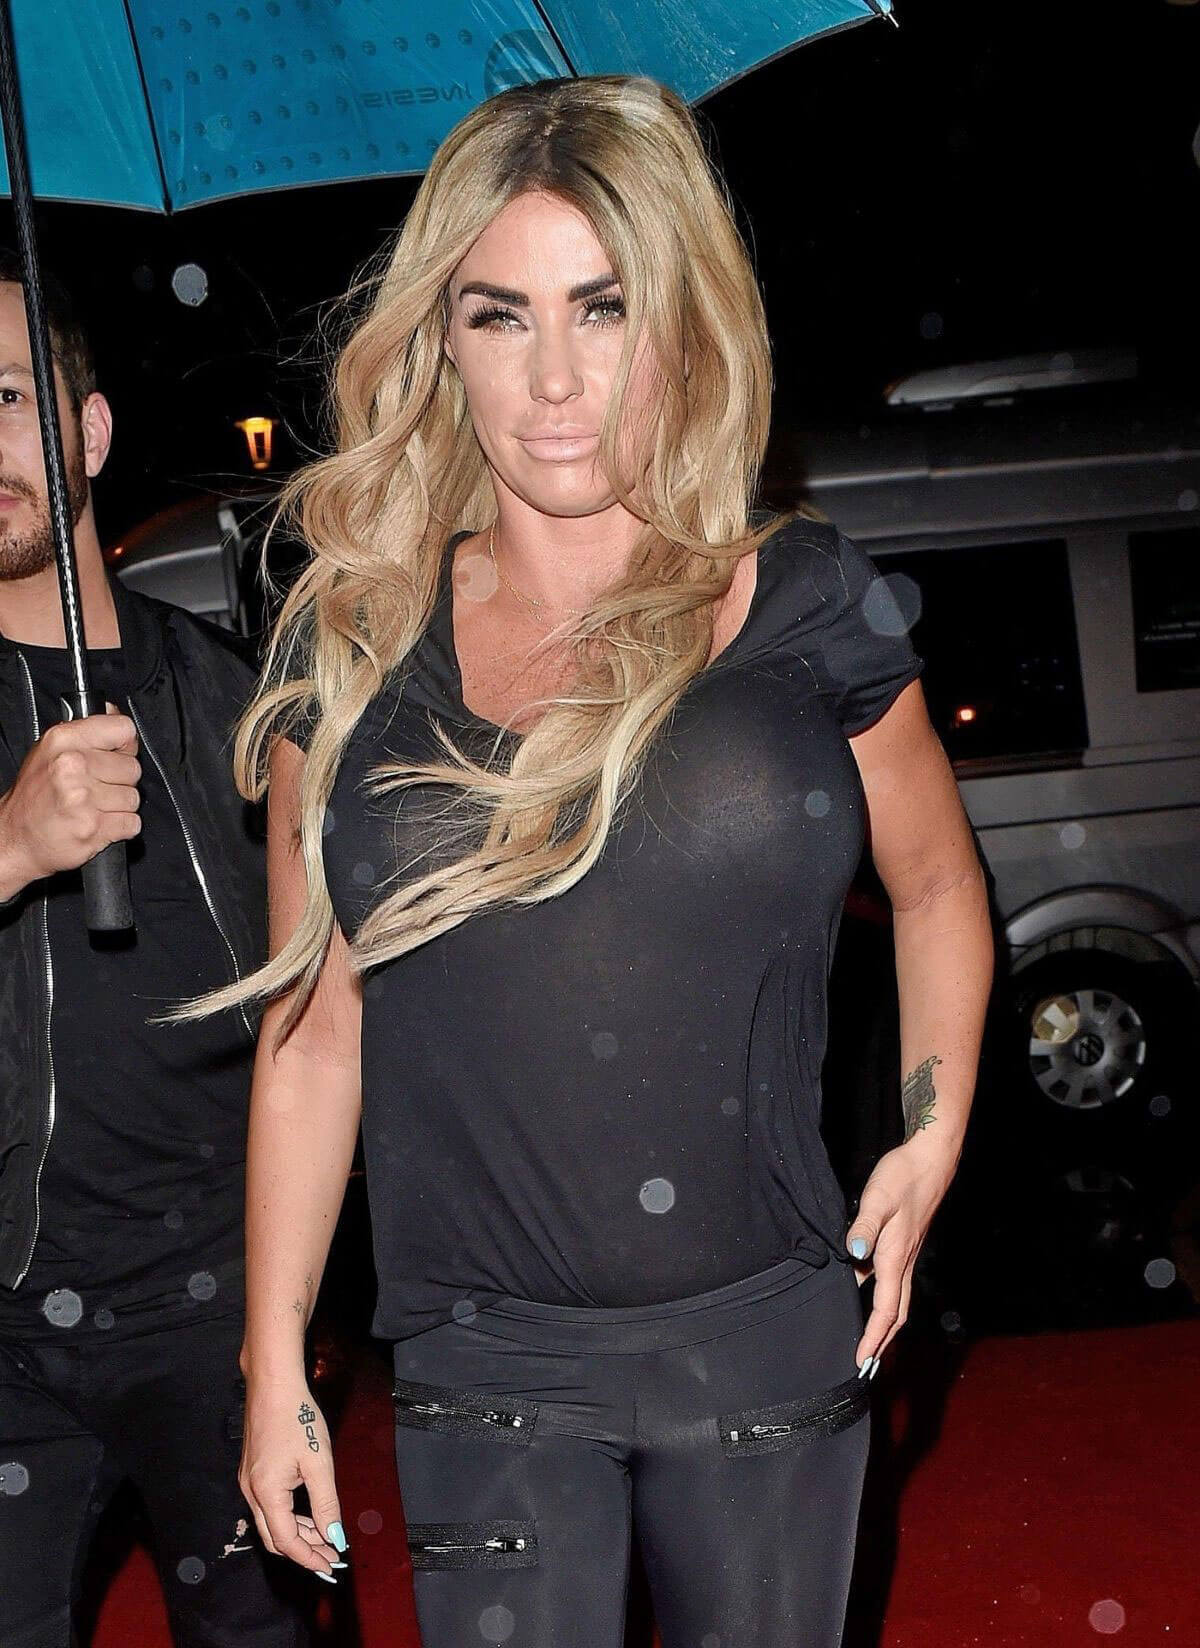 Katie Price wears transparent top at a party in Blackpool